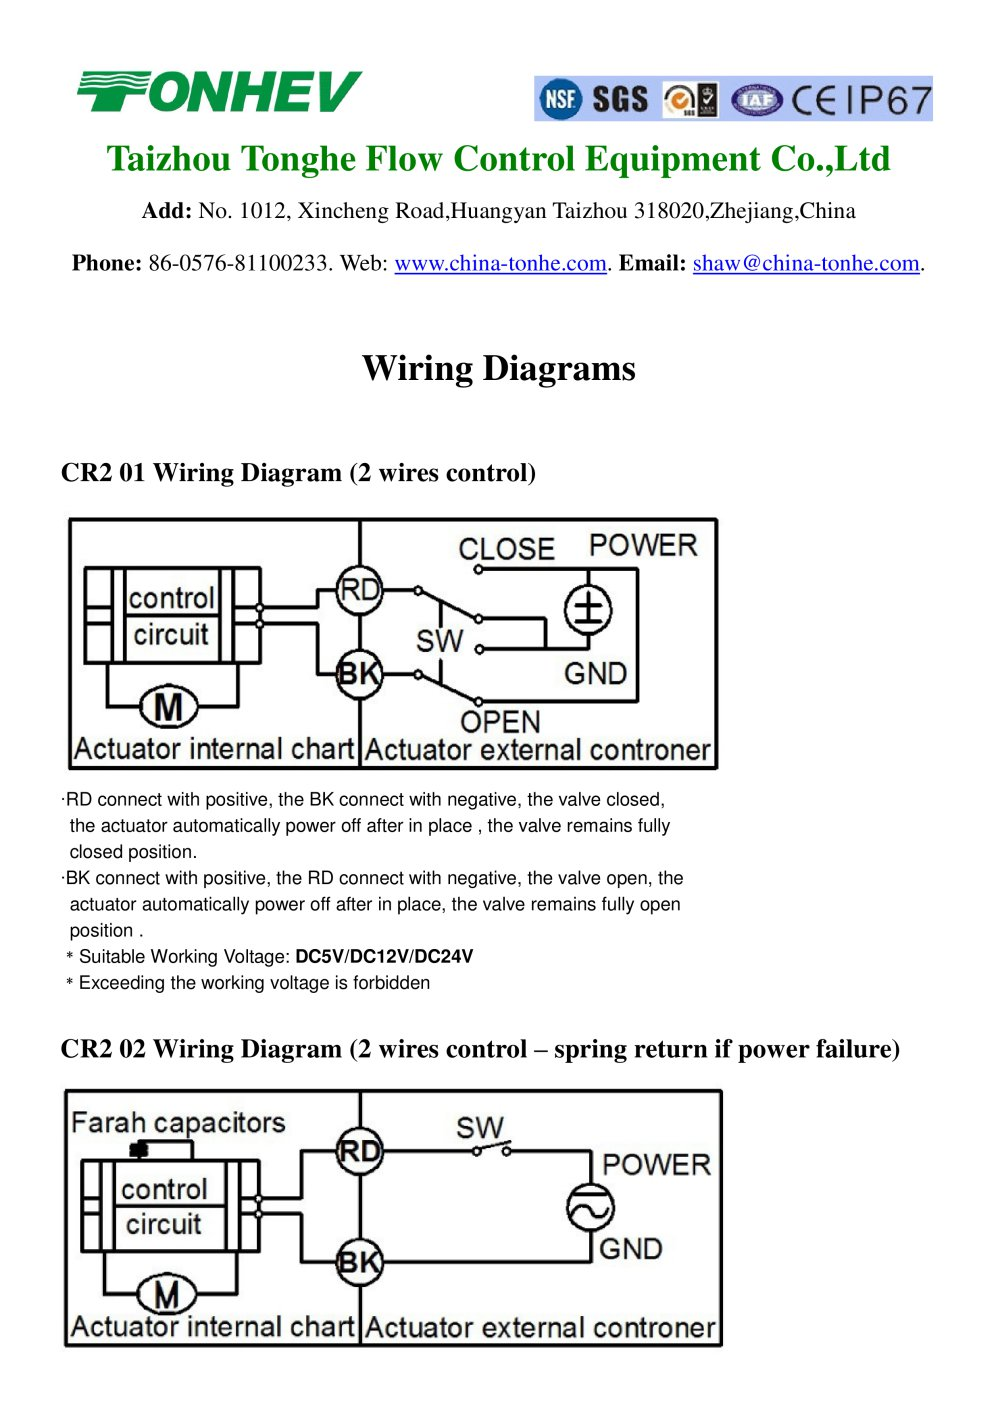 tonhe motorized valve wiring diagrams 514801_1b tonhe motorized valve wiring diagrams taizhou tonhe flow control honeywell motorized valve wiring diagram at fashall.co